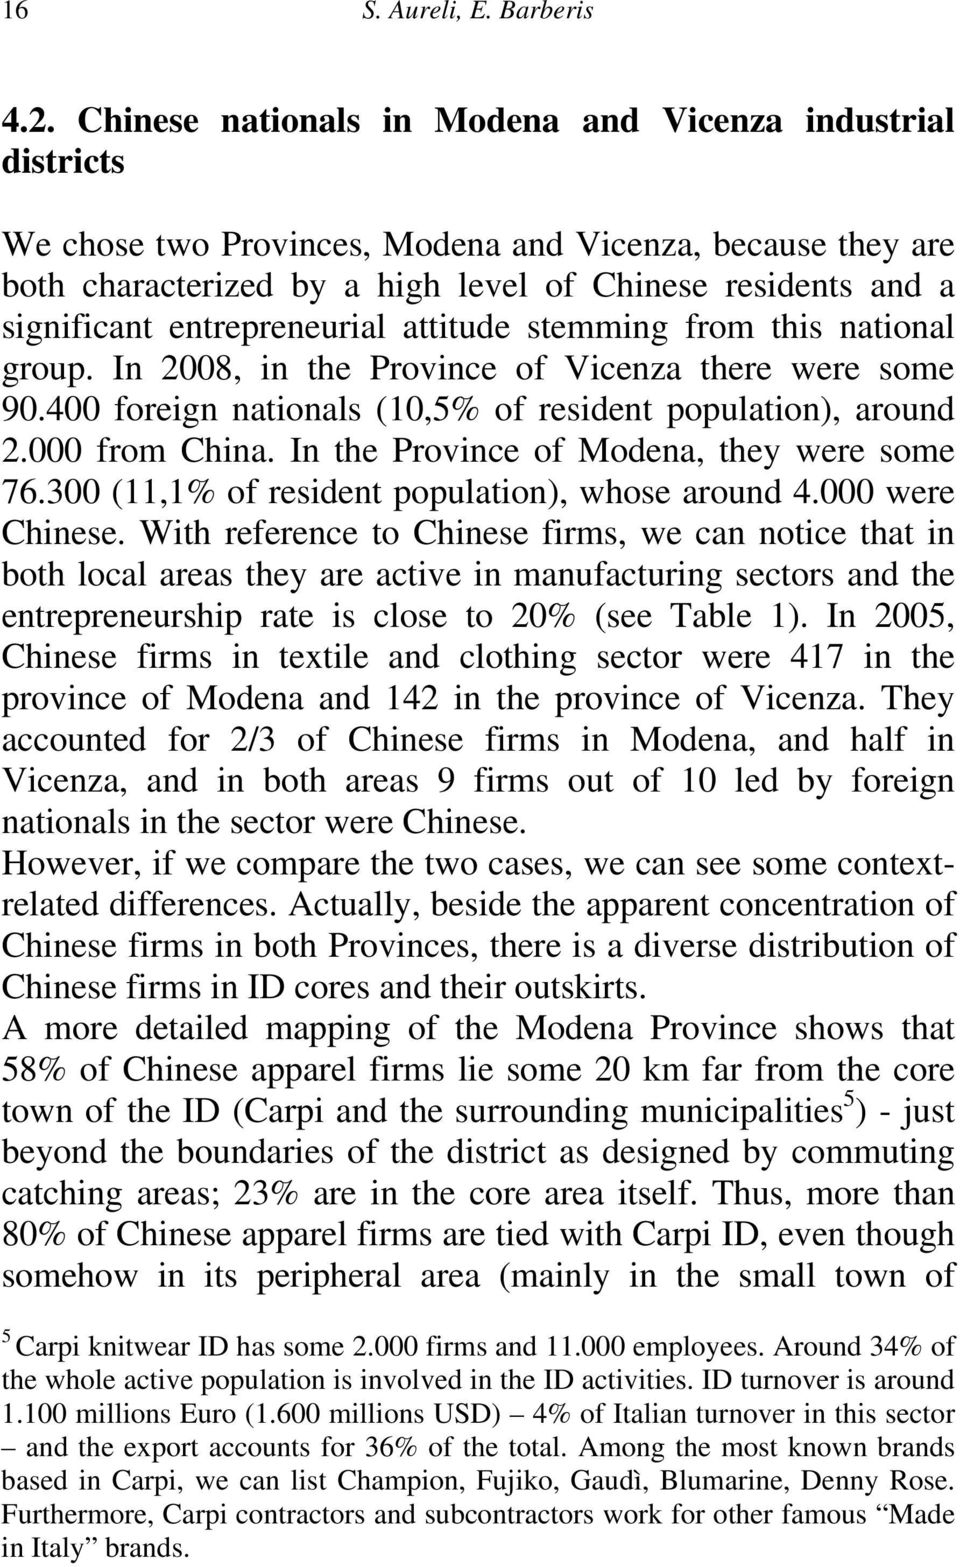 entrepreneurial attitude stemming from this national group. In 2008, in the Province of Vicenza there were some 90.400 foreign nationals (10,5% of resident population), around 2.000 from China.